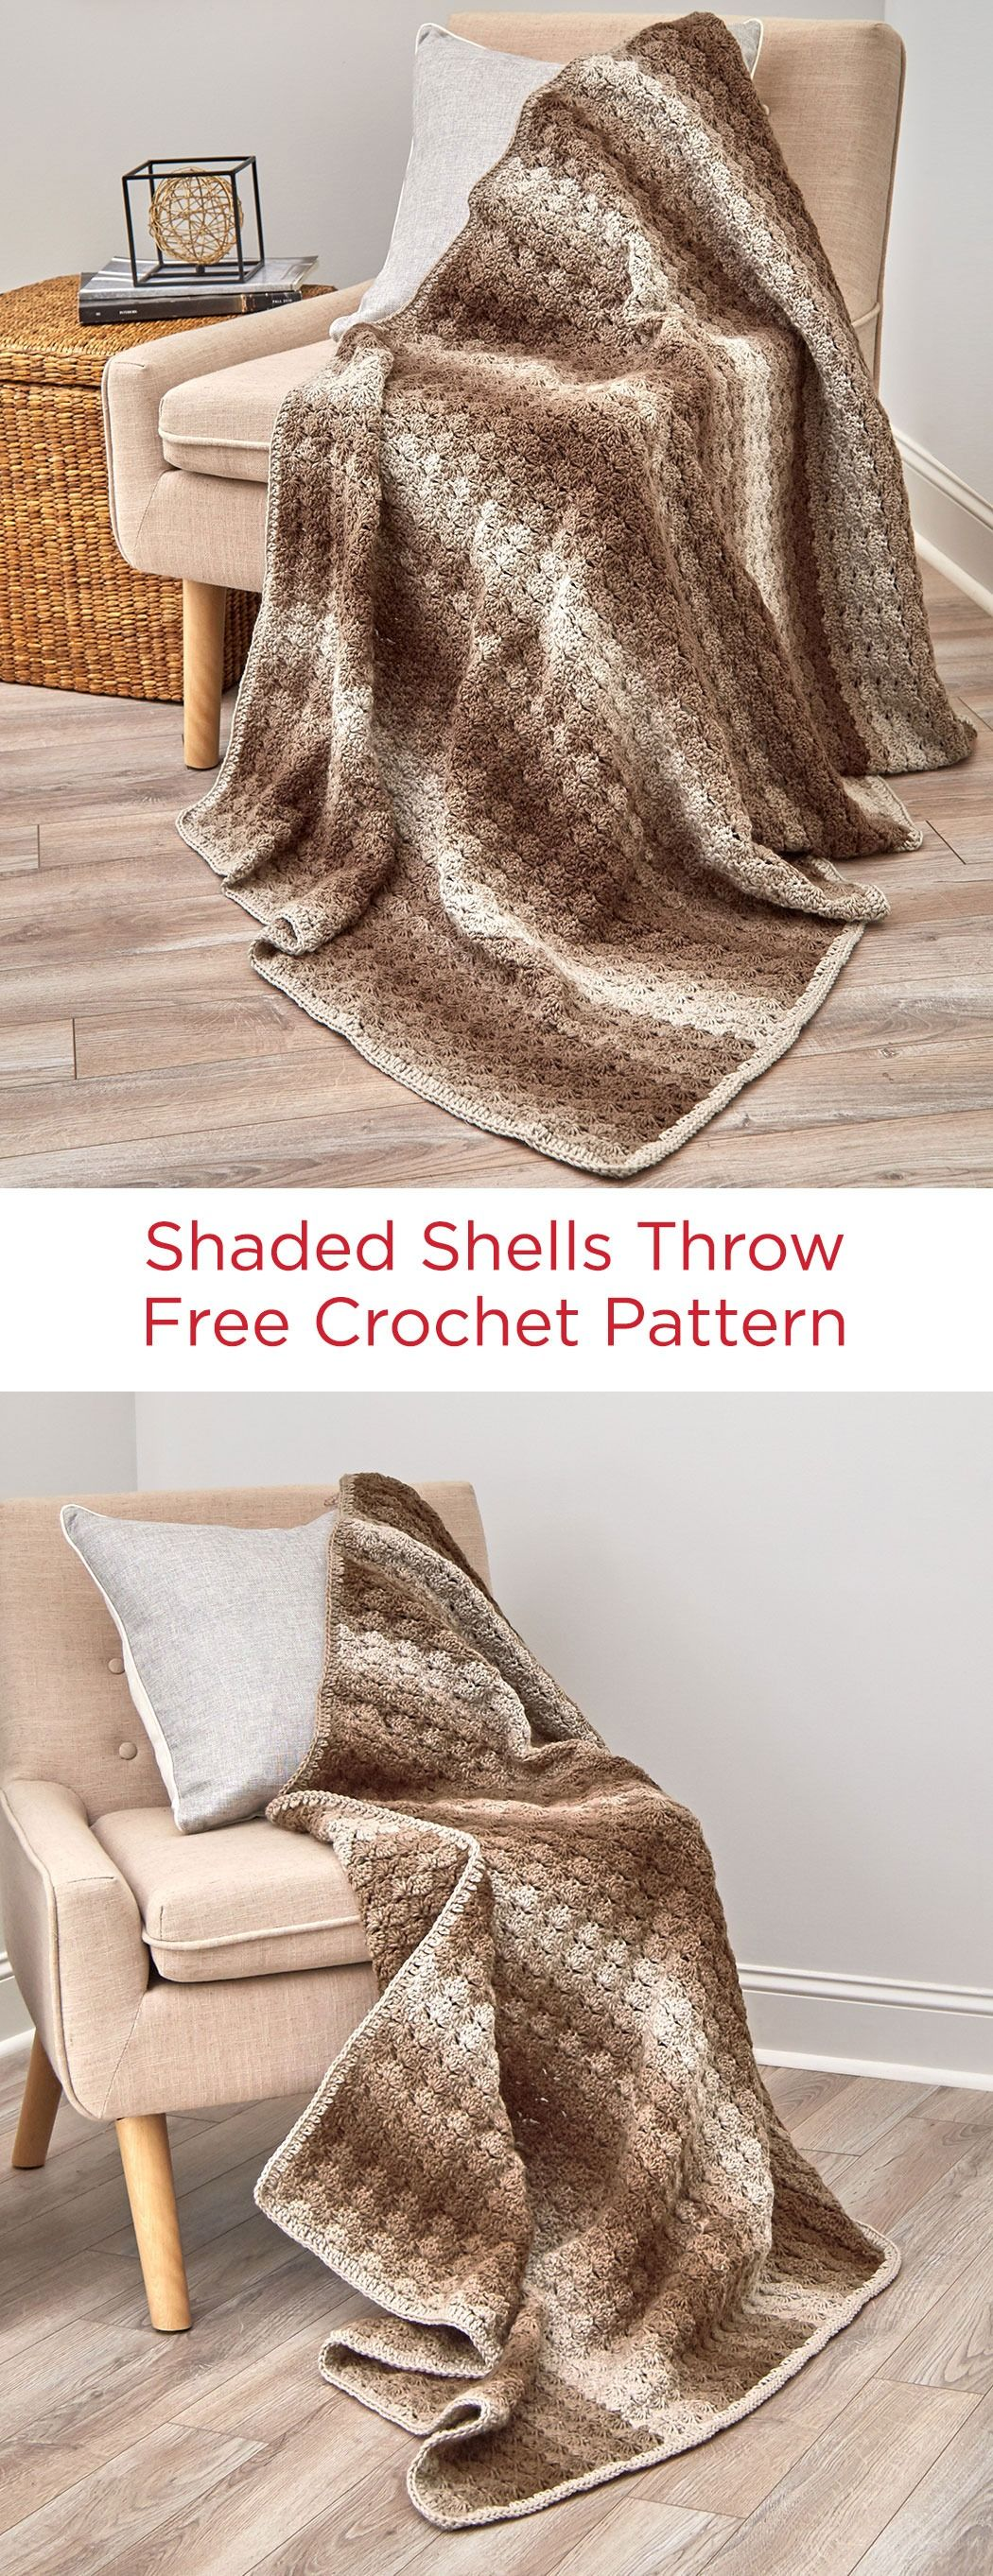 Shaded Shells Throw Free Crochet Pattern in Red Heart Super Saver ...